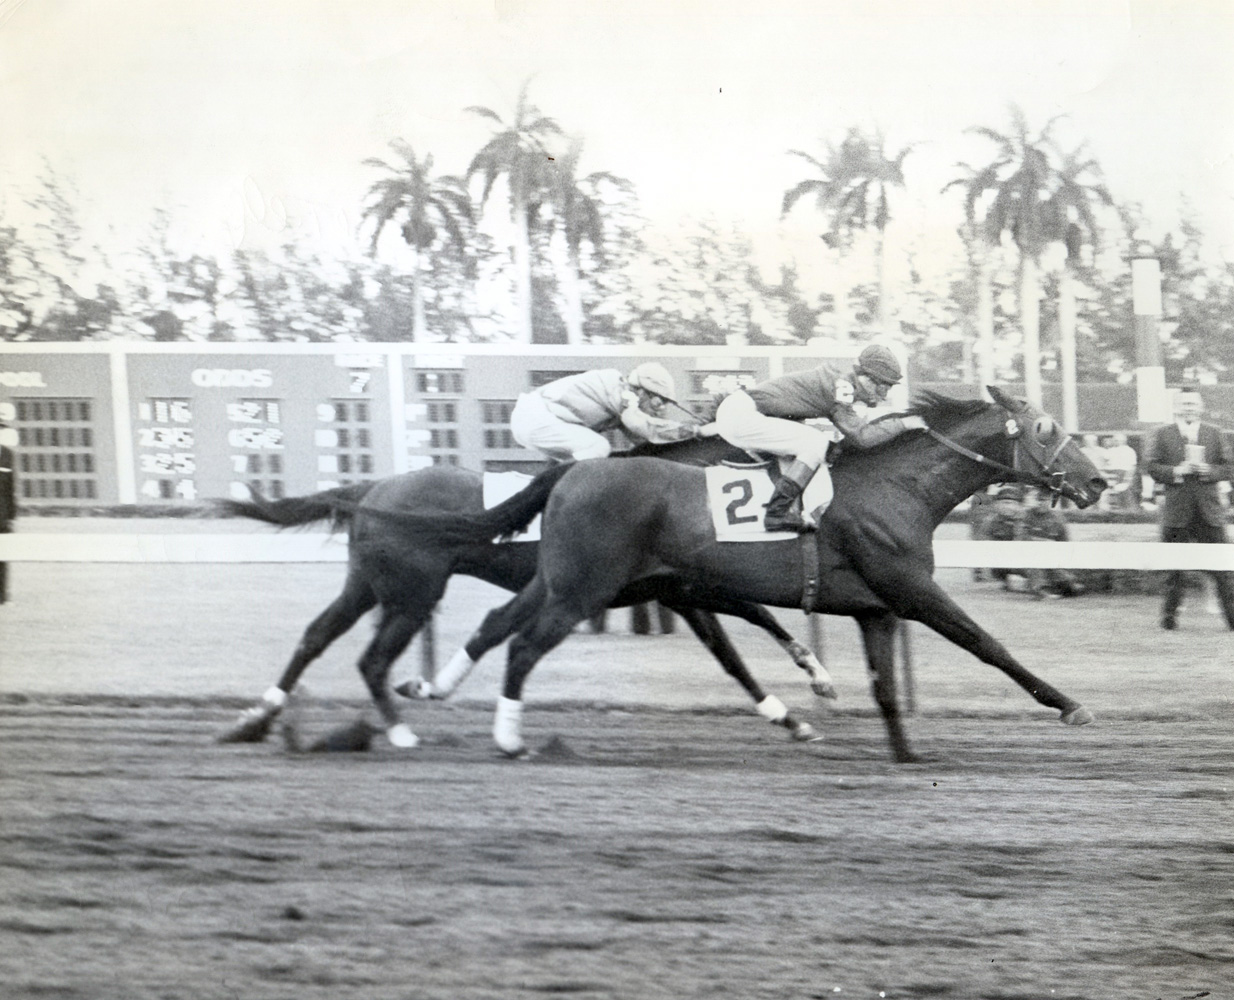 John Sellers and Yorky win the 1961 Widener Handicap at Hialeah Park (Leo Frutkoff/Museum Collection)